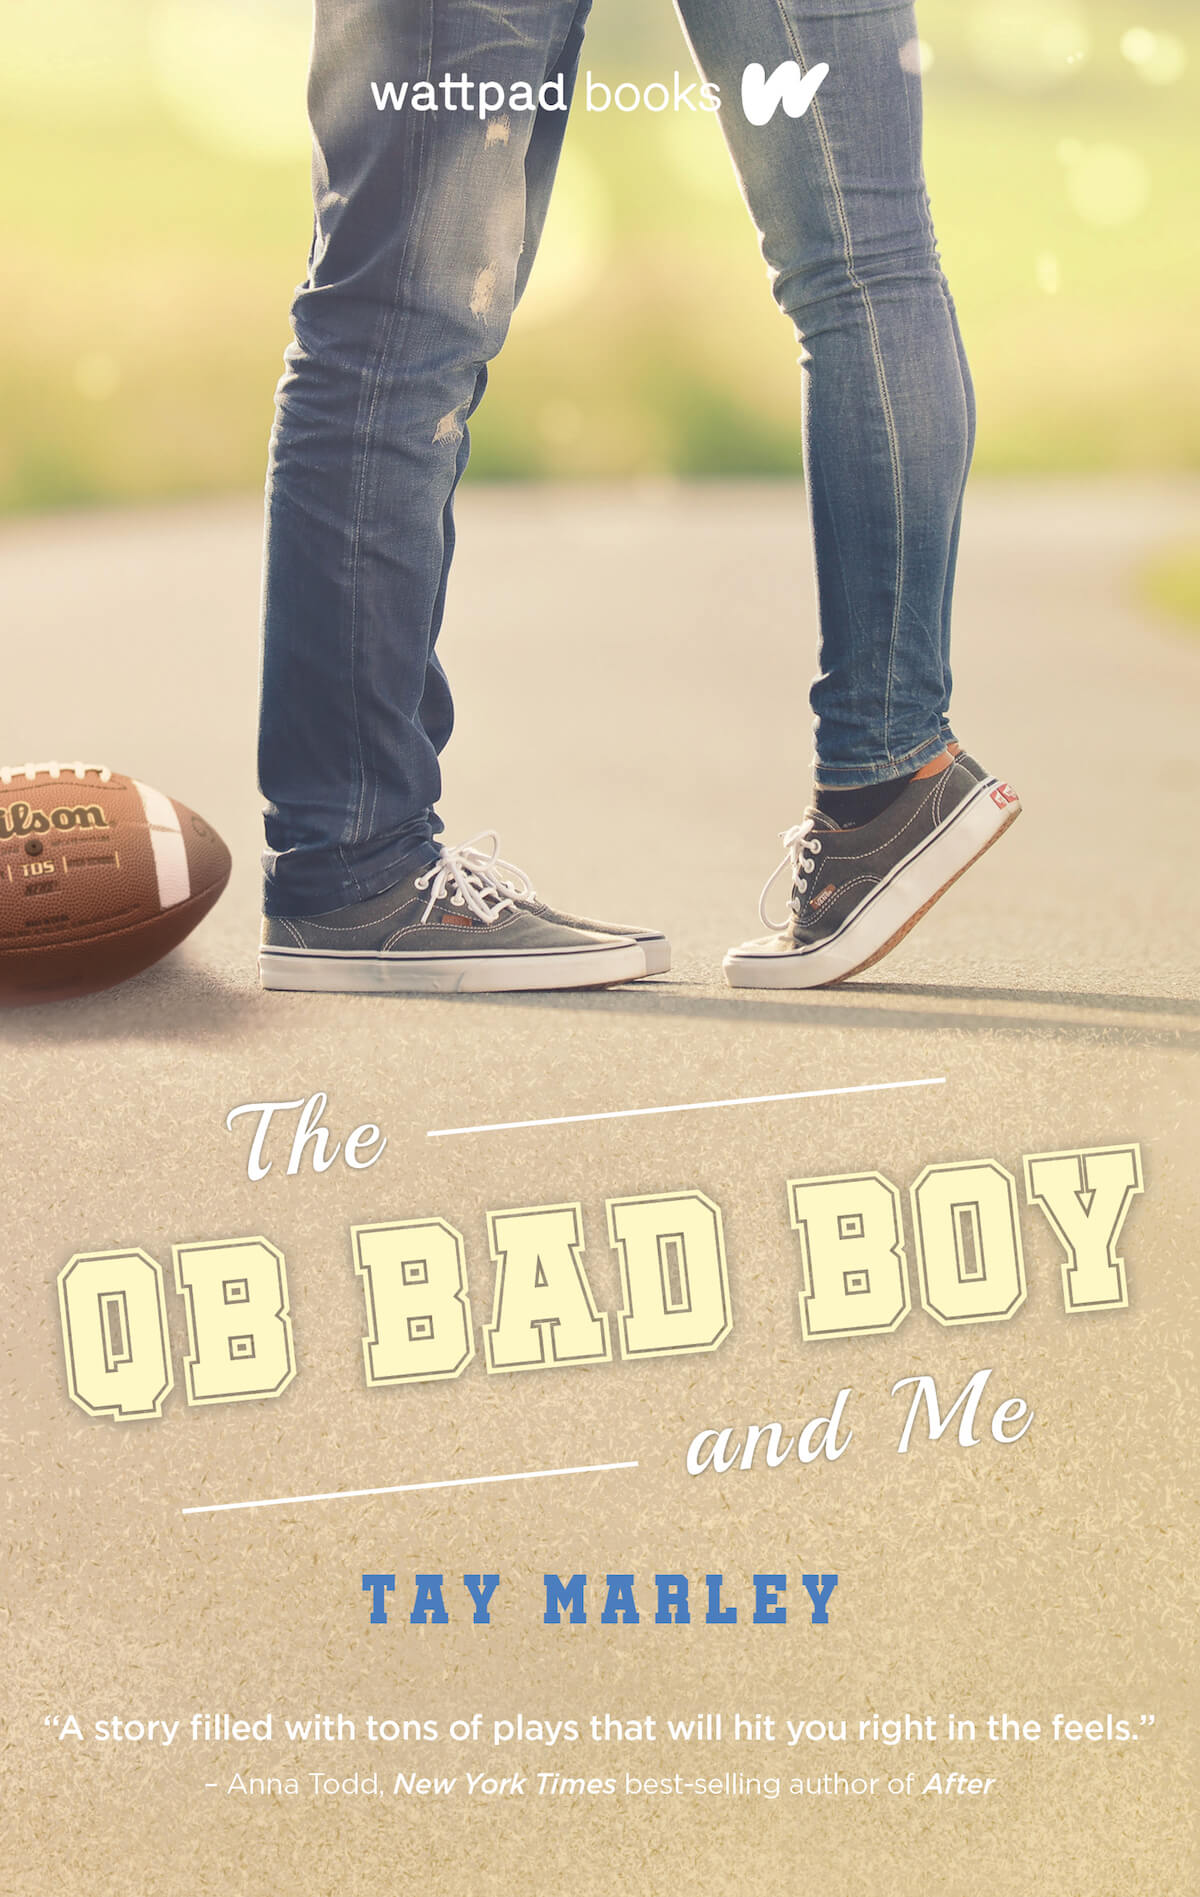 Interview With 'QB Bad Boy and Me' Author Tay Marley